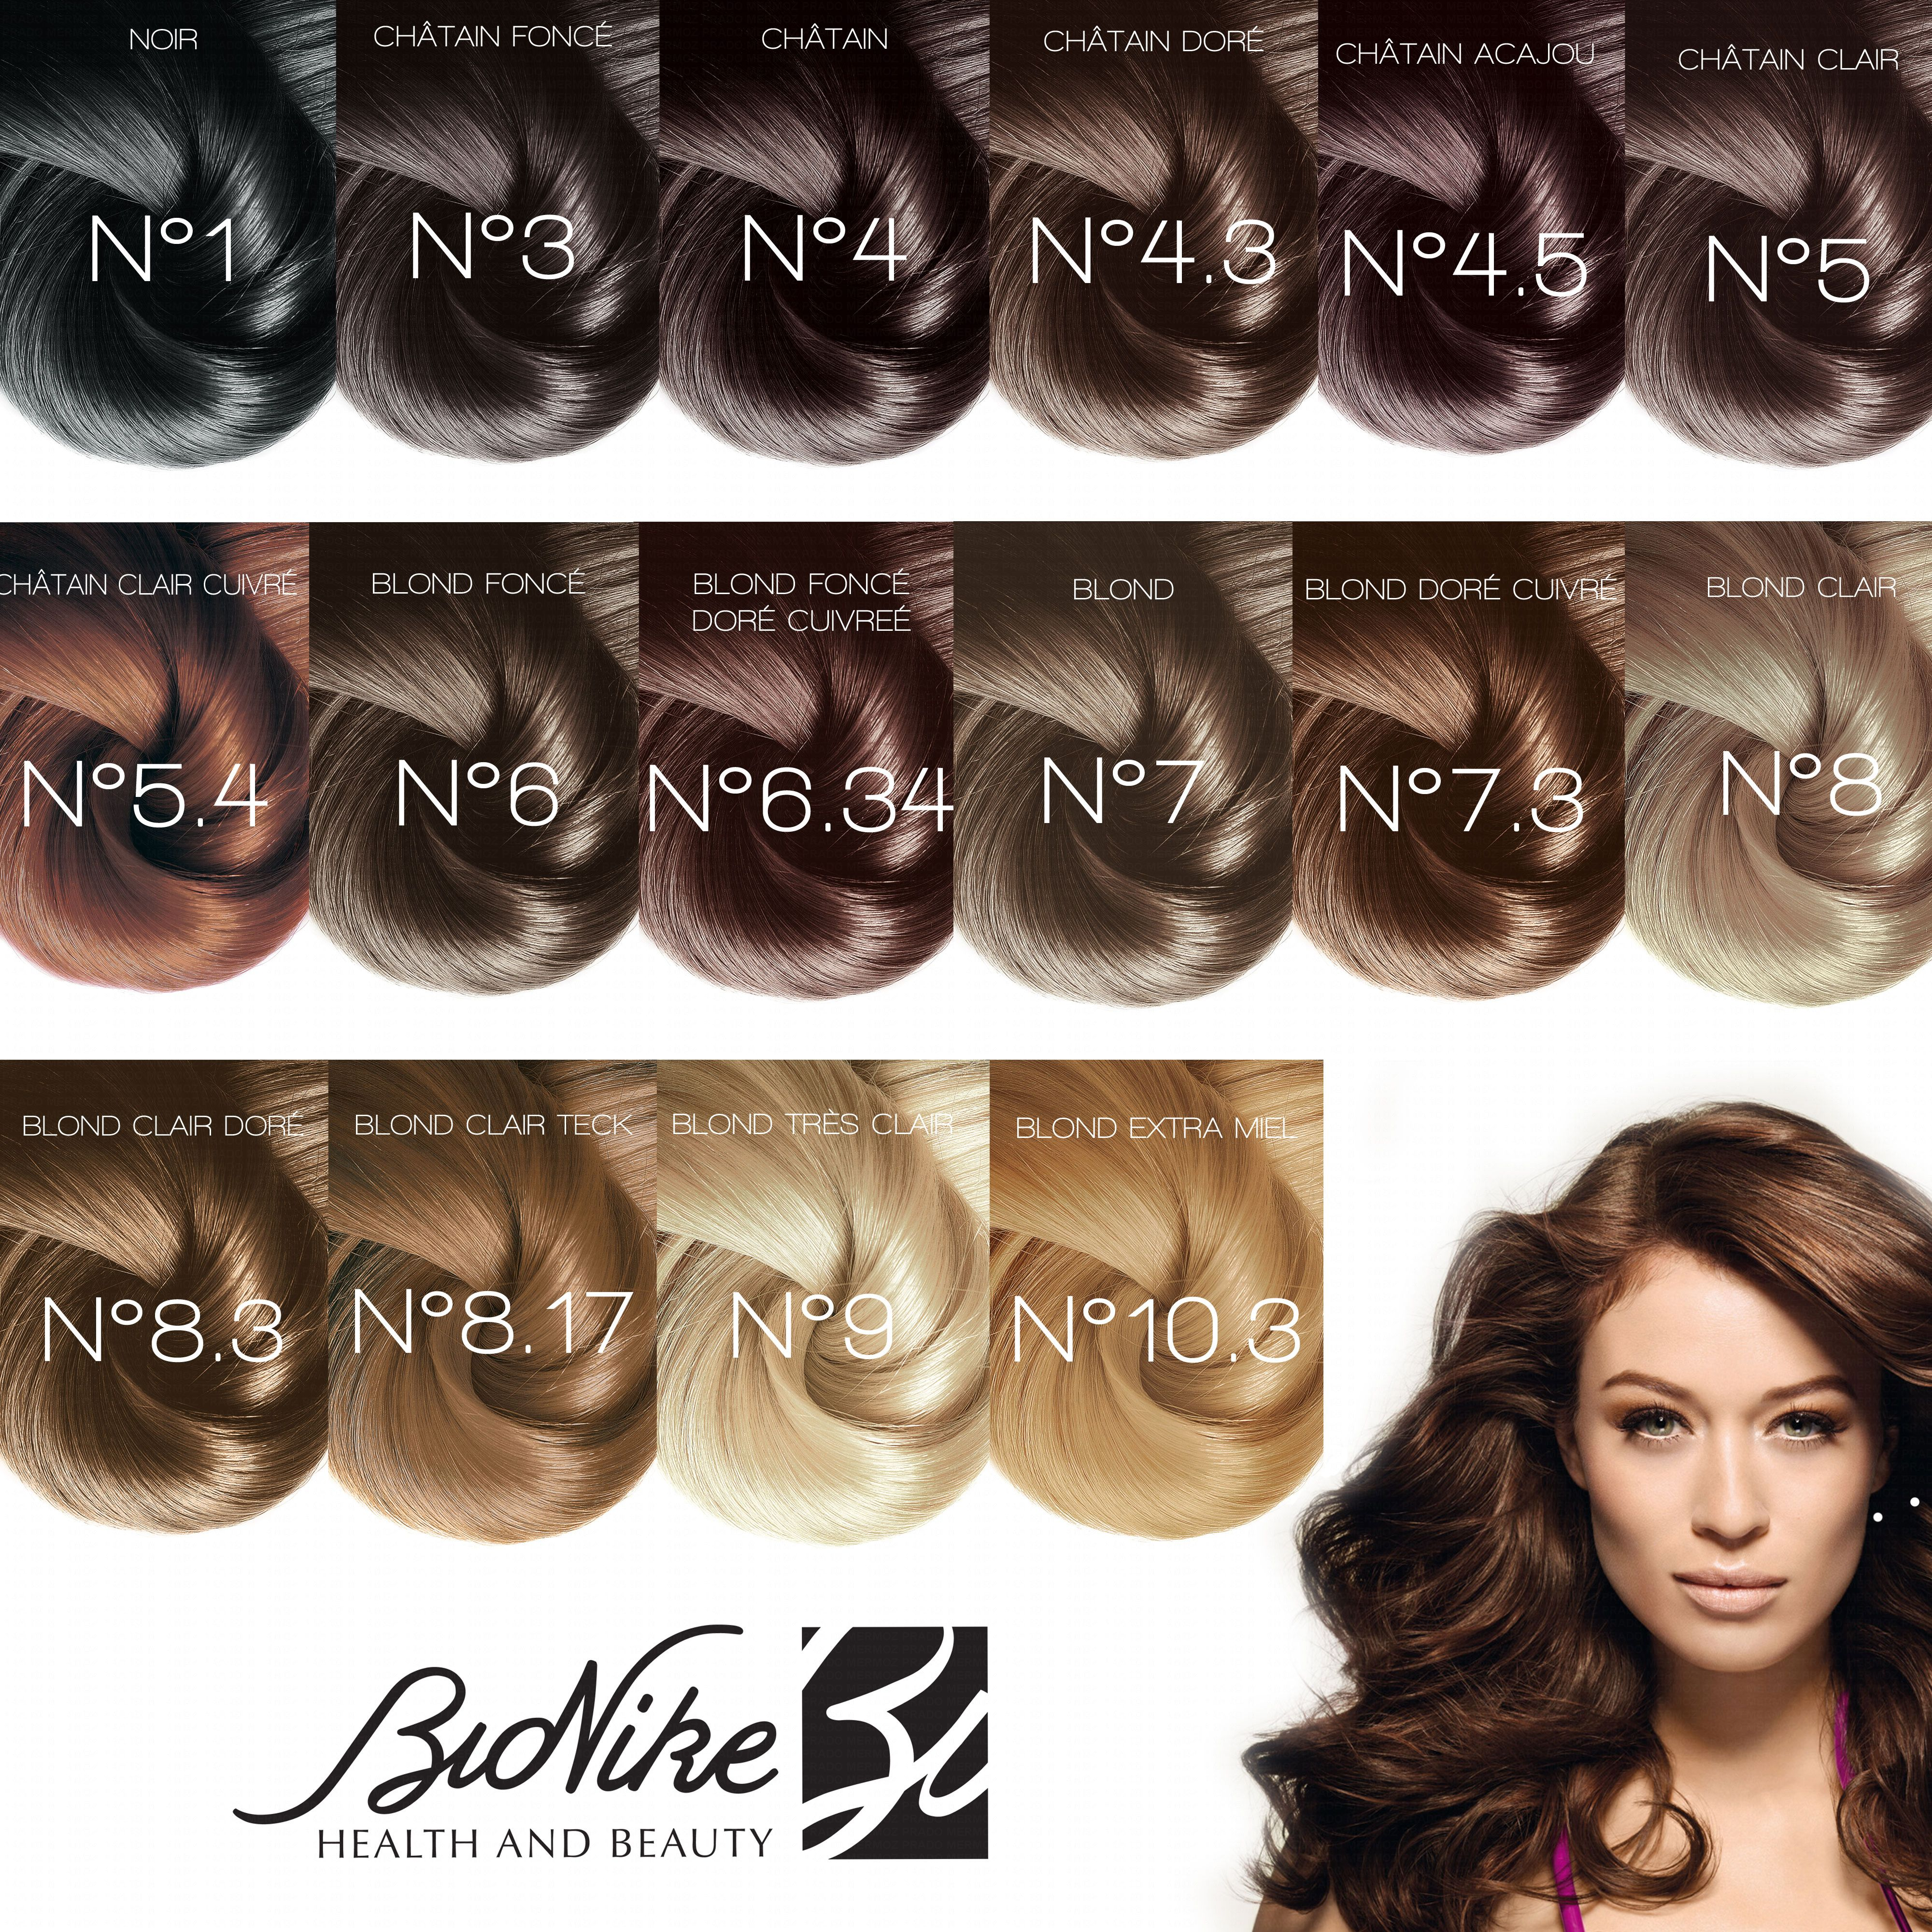 bionike shine on chtain clair cuivr 54 1 crme colorante 50ml 1 rvlateur 75ml - Coloration Chatain Acajou Cuivr